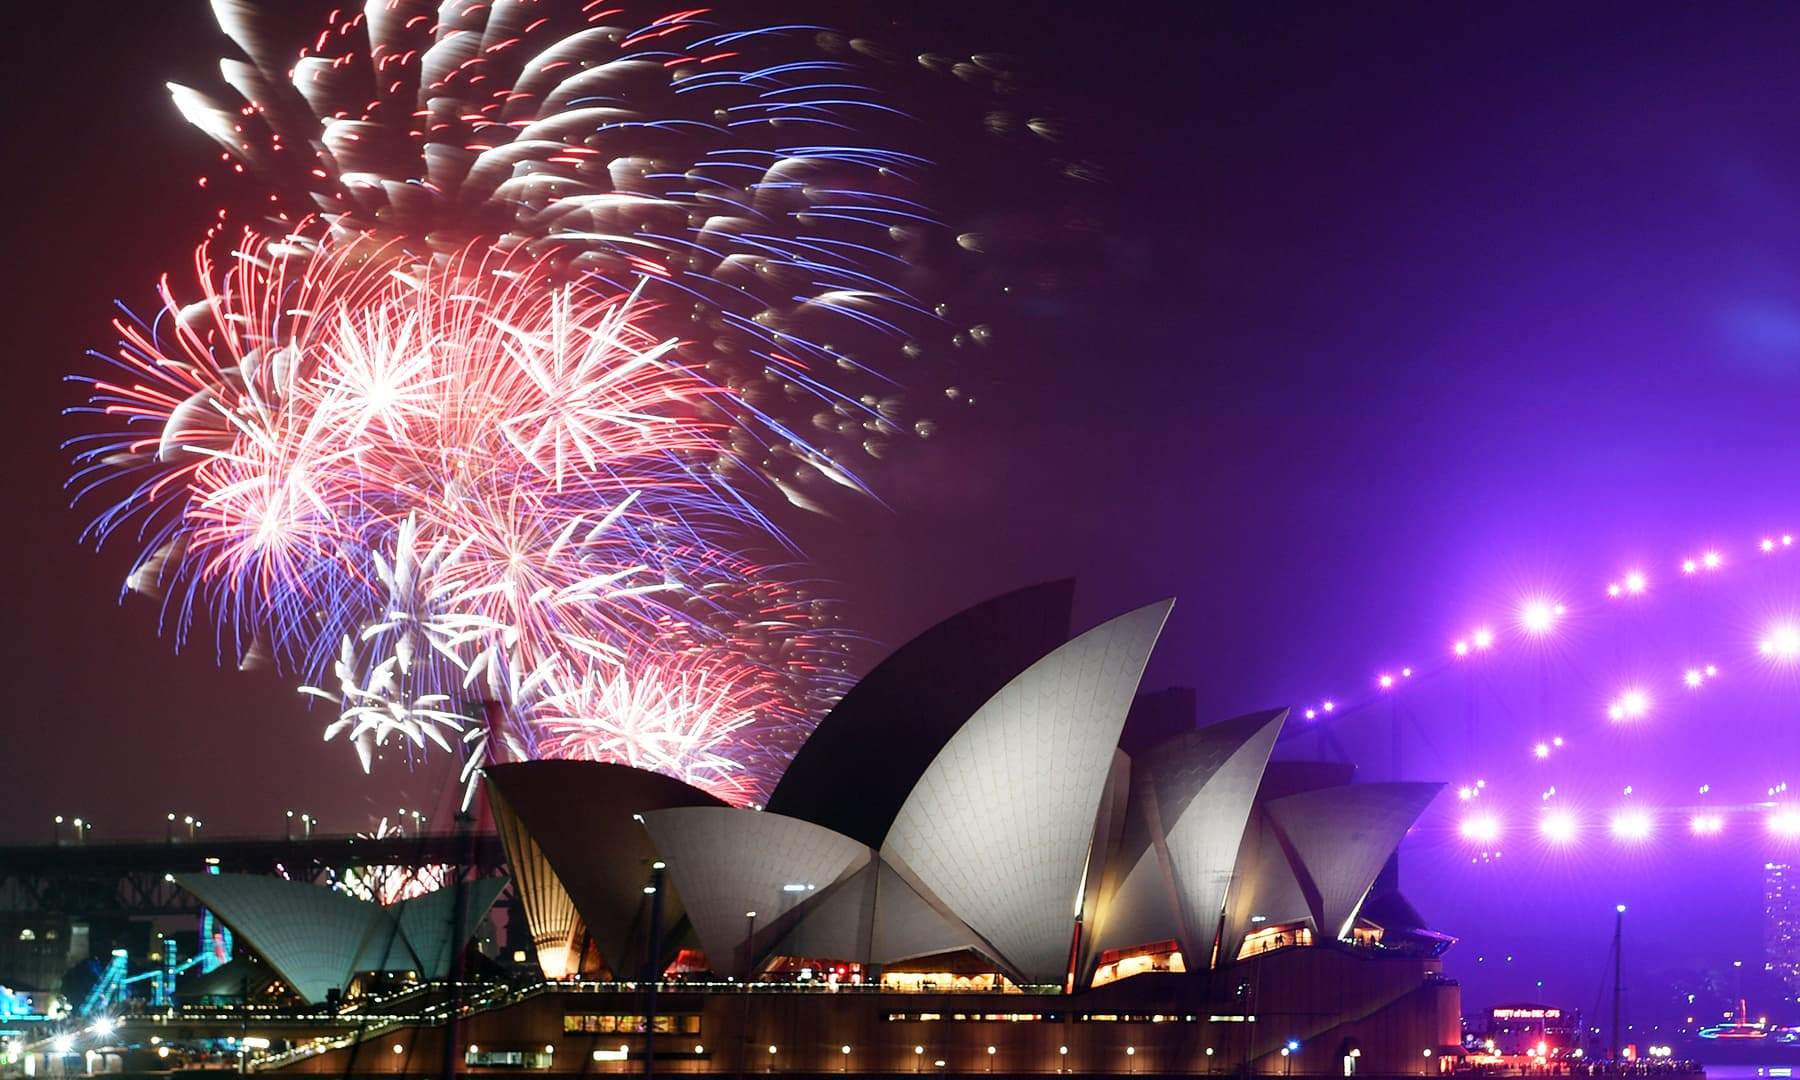 Fireworks are seen from Mrs Macquarie's Chair during New Year's Eve celebrations in Sydney, Australia, on Tuesday. — Reuters